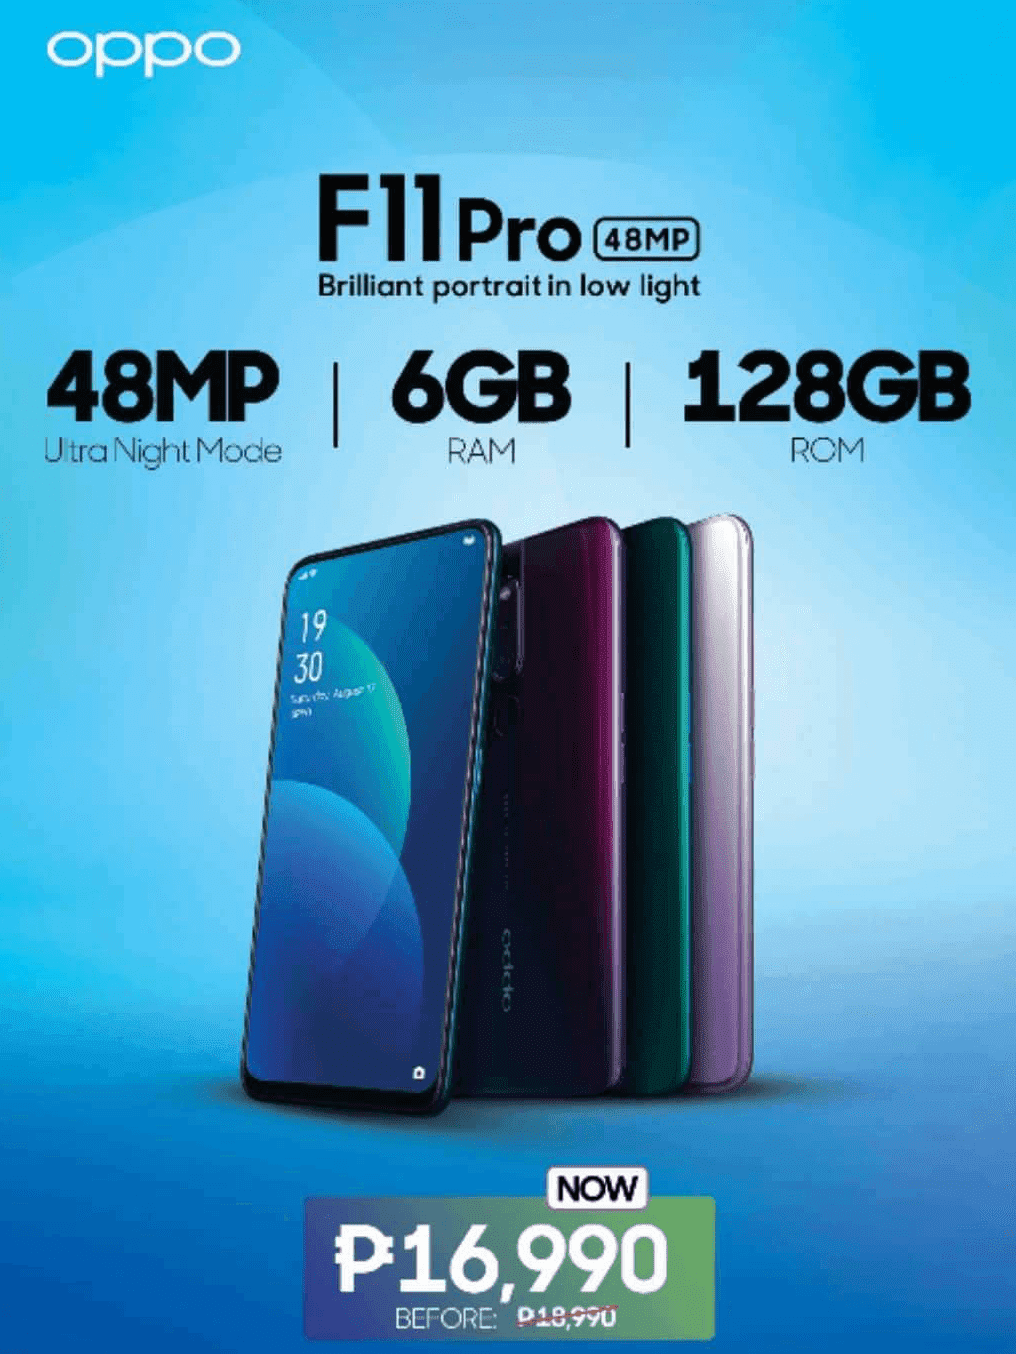 F11 Pro feels premium but affordably-priced for you